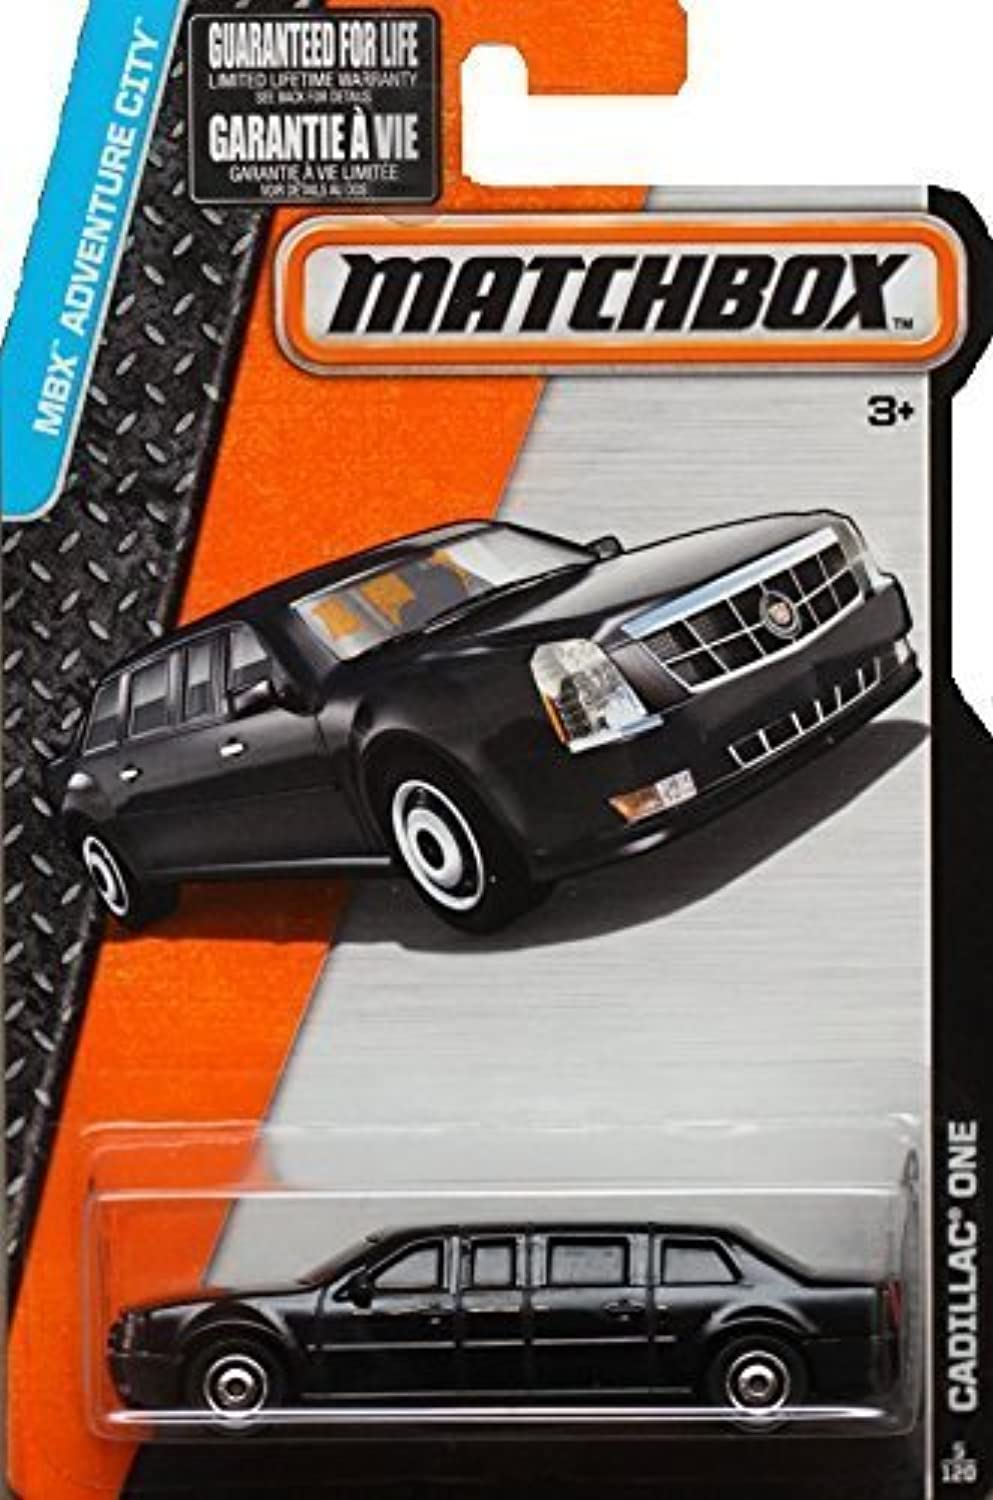 Matchbox 2015 MBX Adventure City 5 120  The Beast Cadillac One Limo Presidential Limousine by Matchbox